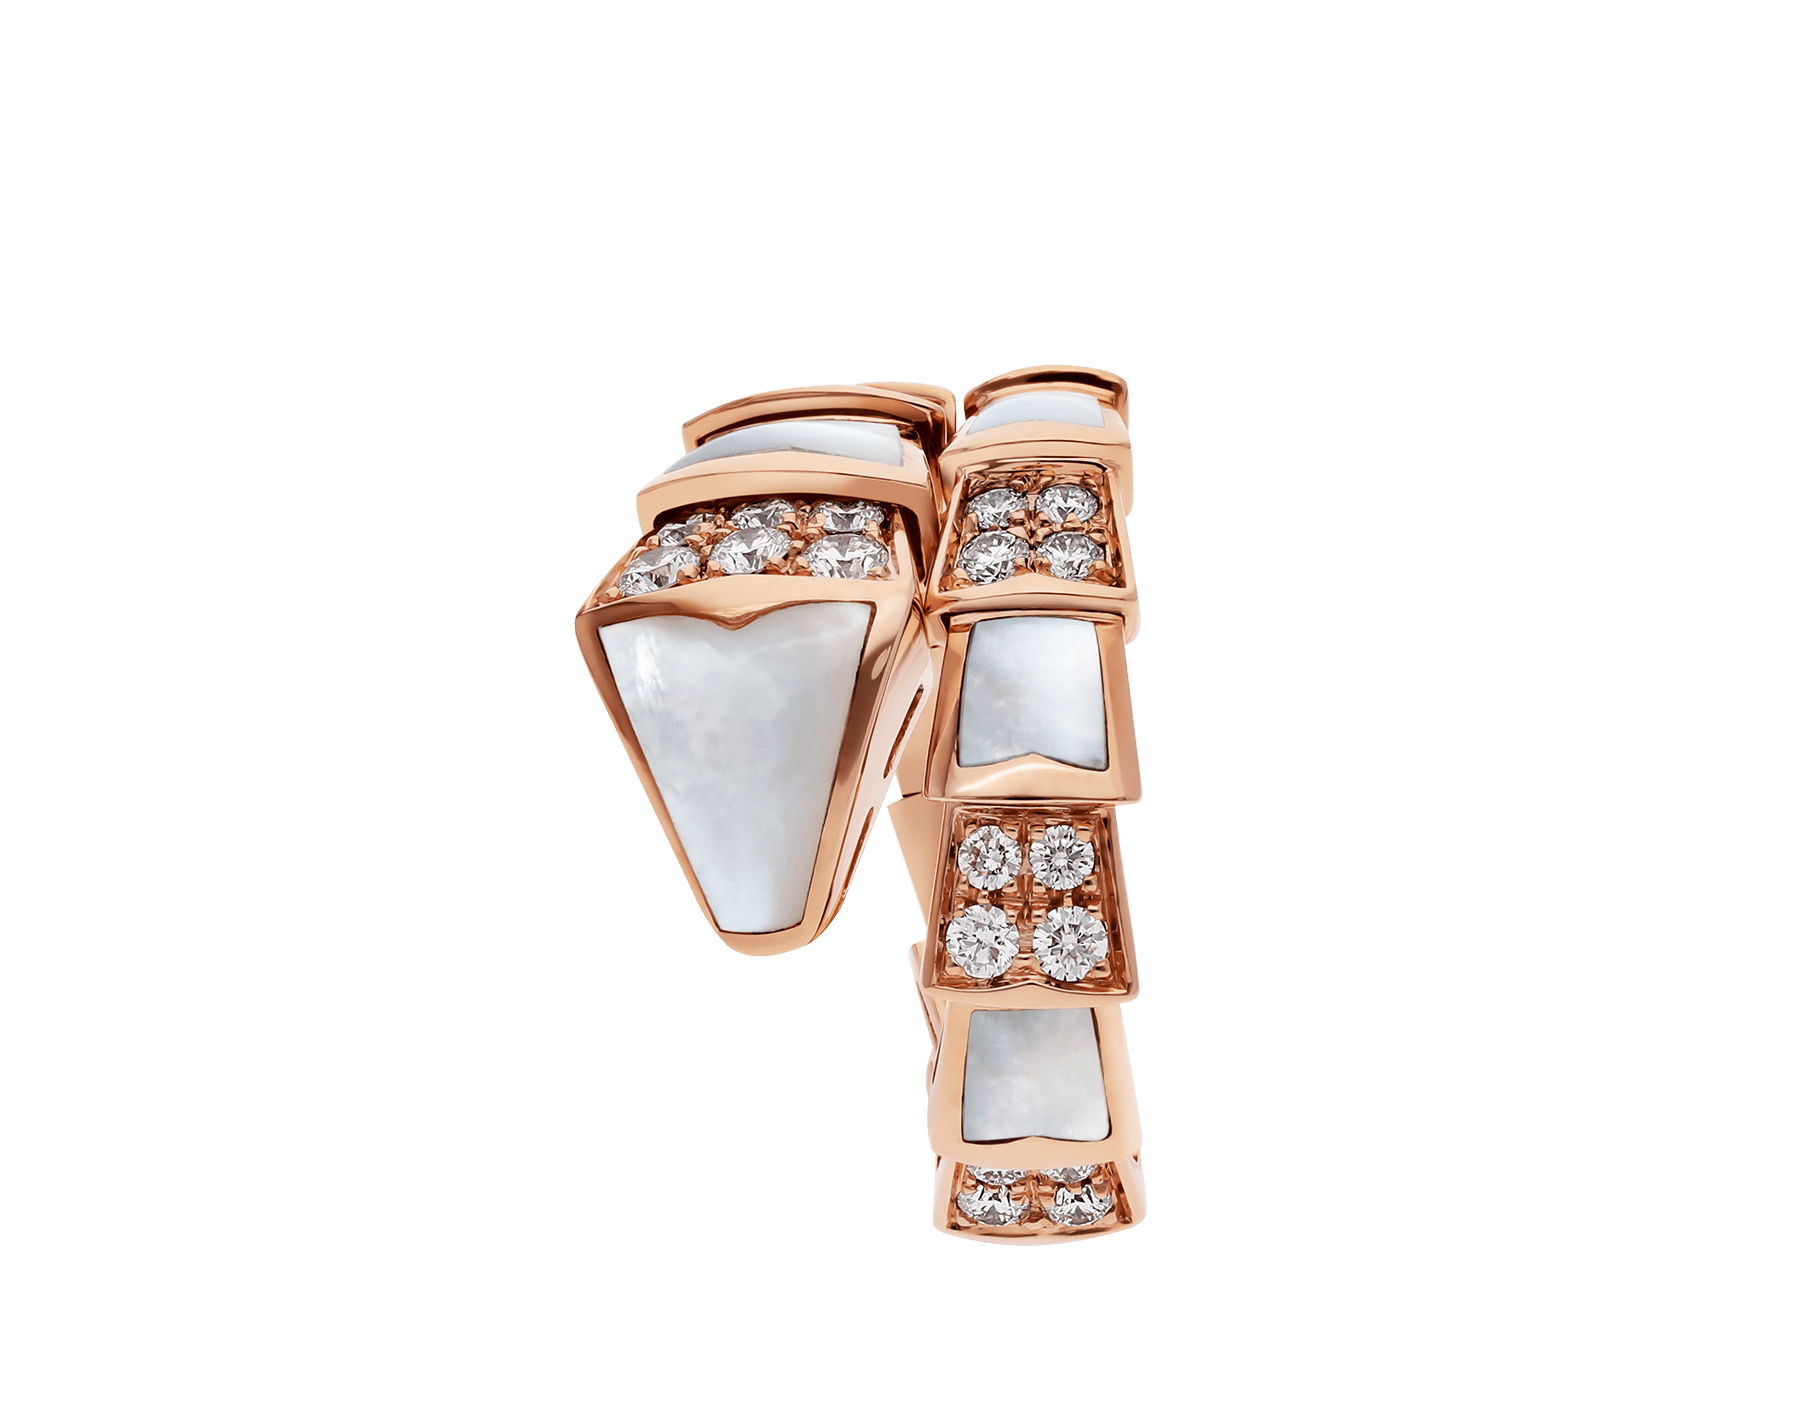 Serpenti Viper one-coil ring in 18 kt rose gold, set with mother-of-pearl elements and pavé diamonds. AN857081 image 2